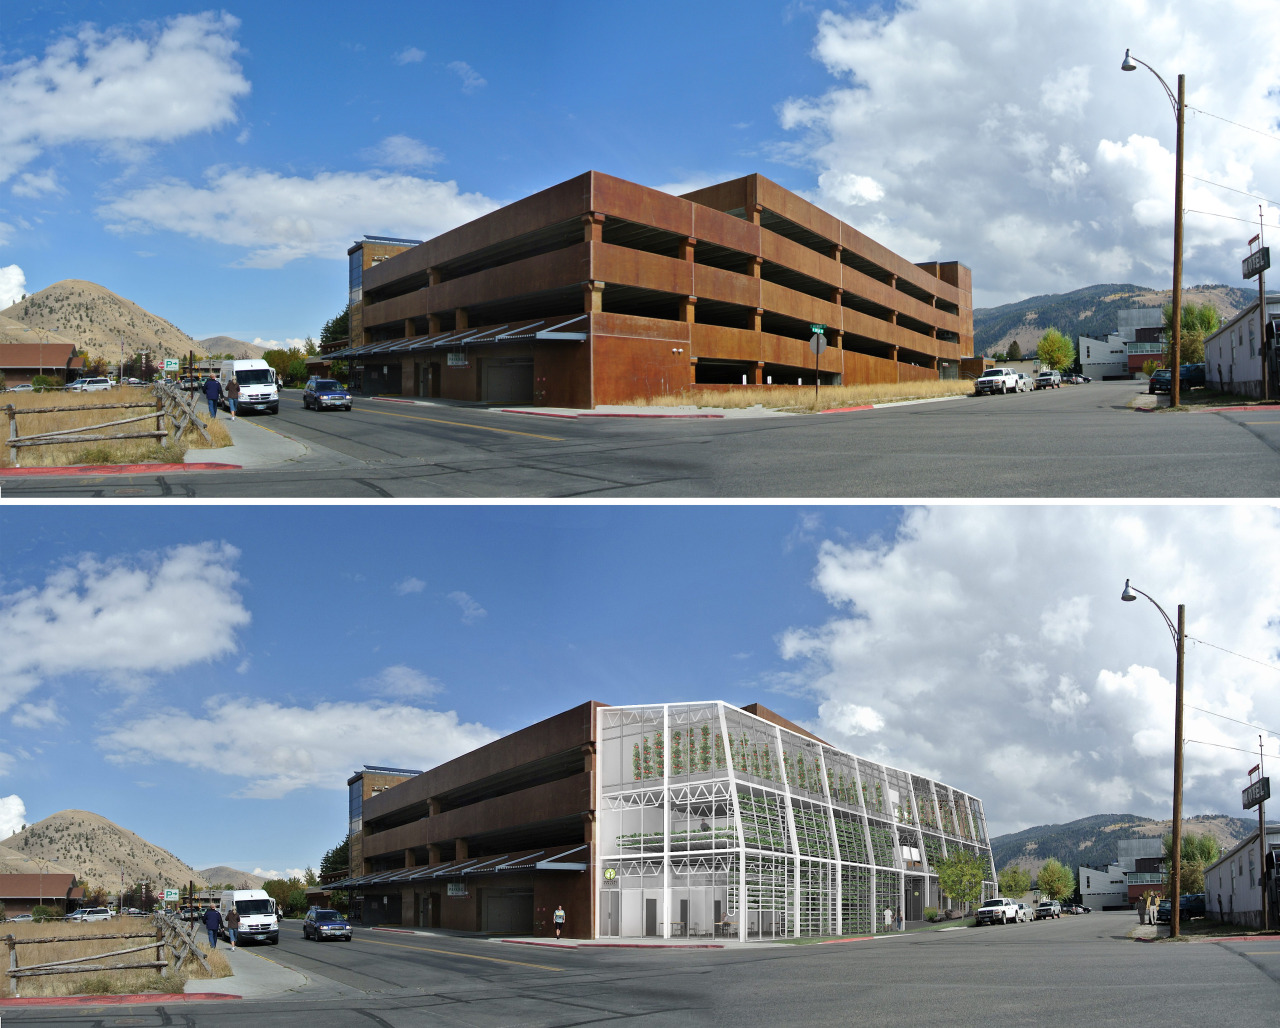 Before and after. A three-story vertical farm designed as urban infill, Vertical Harvest will prove a model for similar urban agriculture projects throughout the world. This project combines an innovative hydroponic system with a carousel that moves plants from artificial to natural light, cutting down on energy costs.